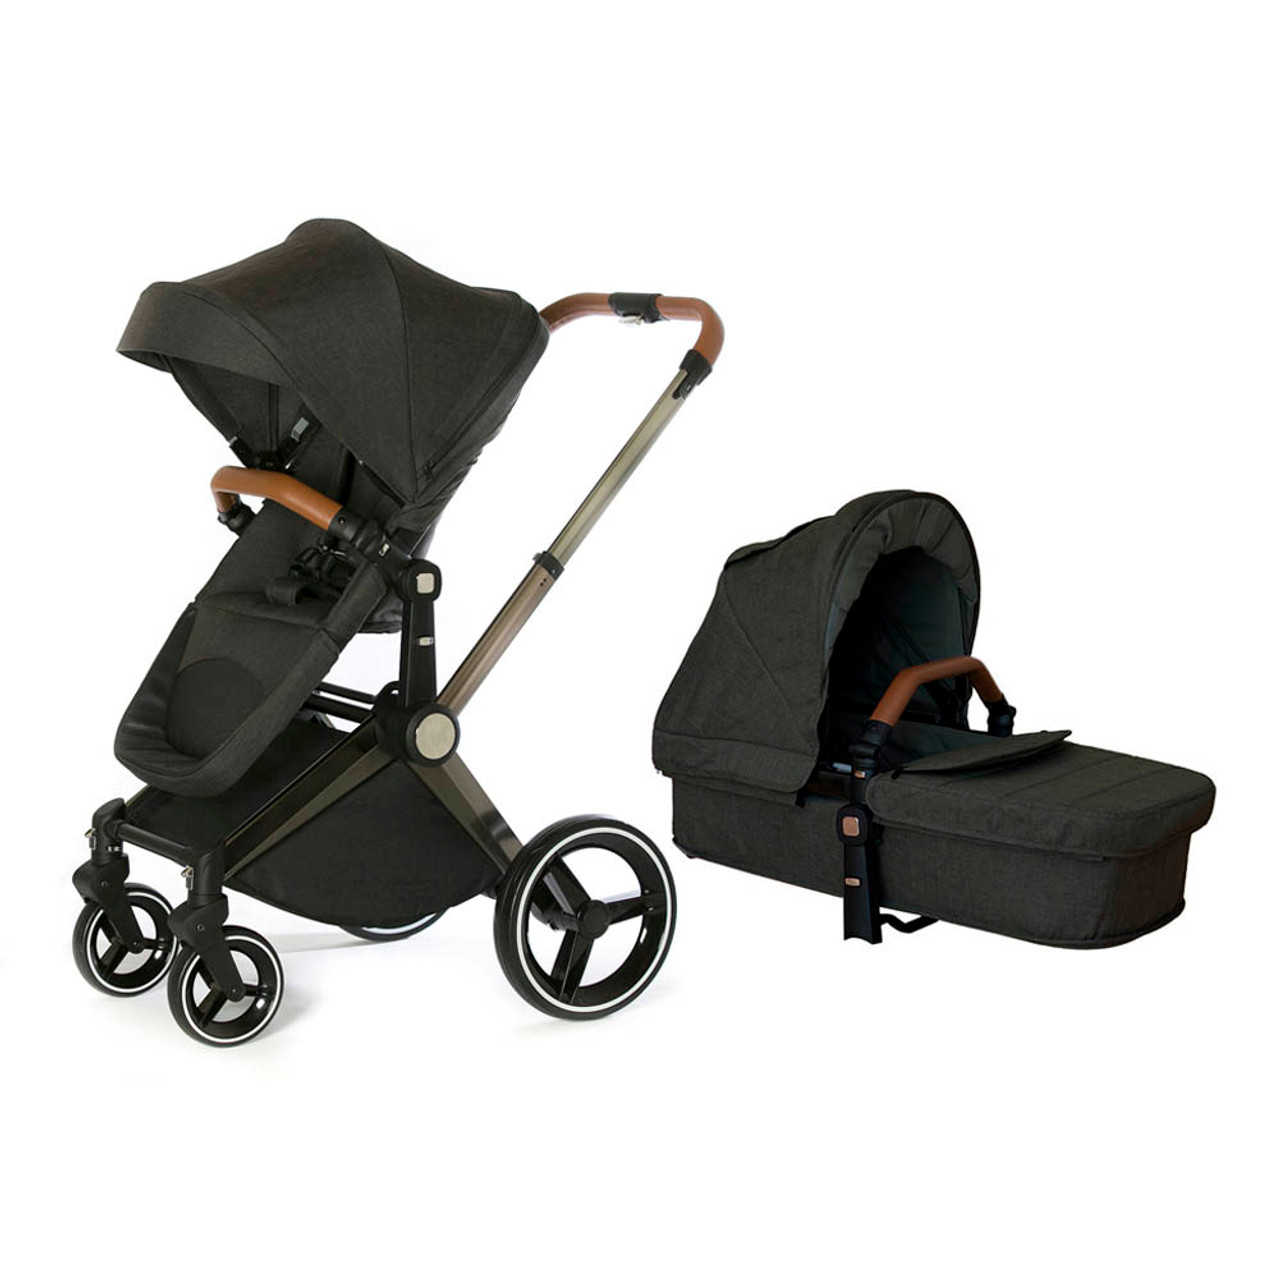 Practical and comfortable baby stroller World of Childhood